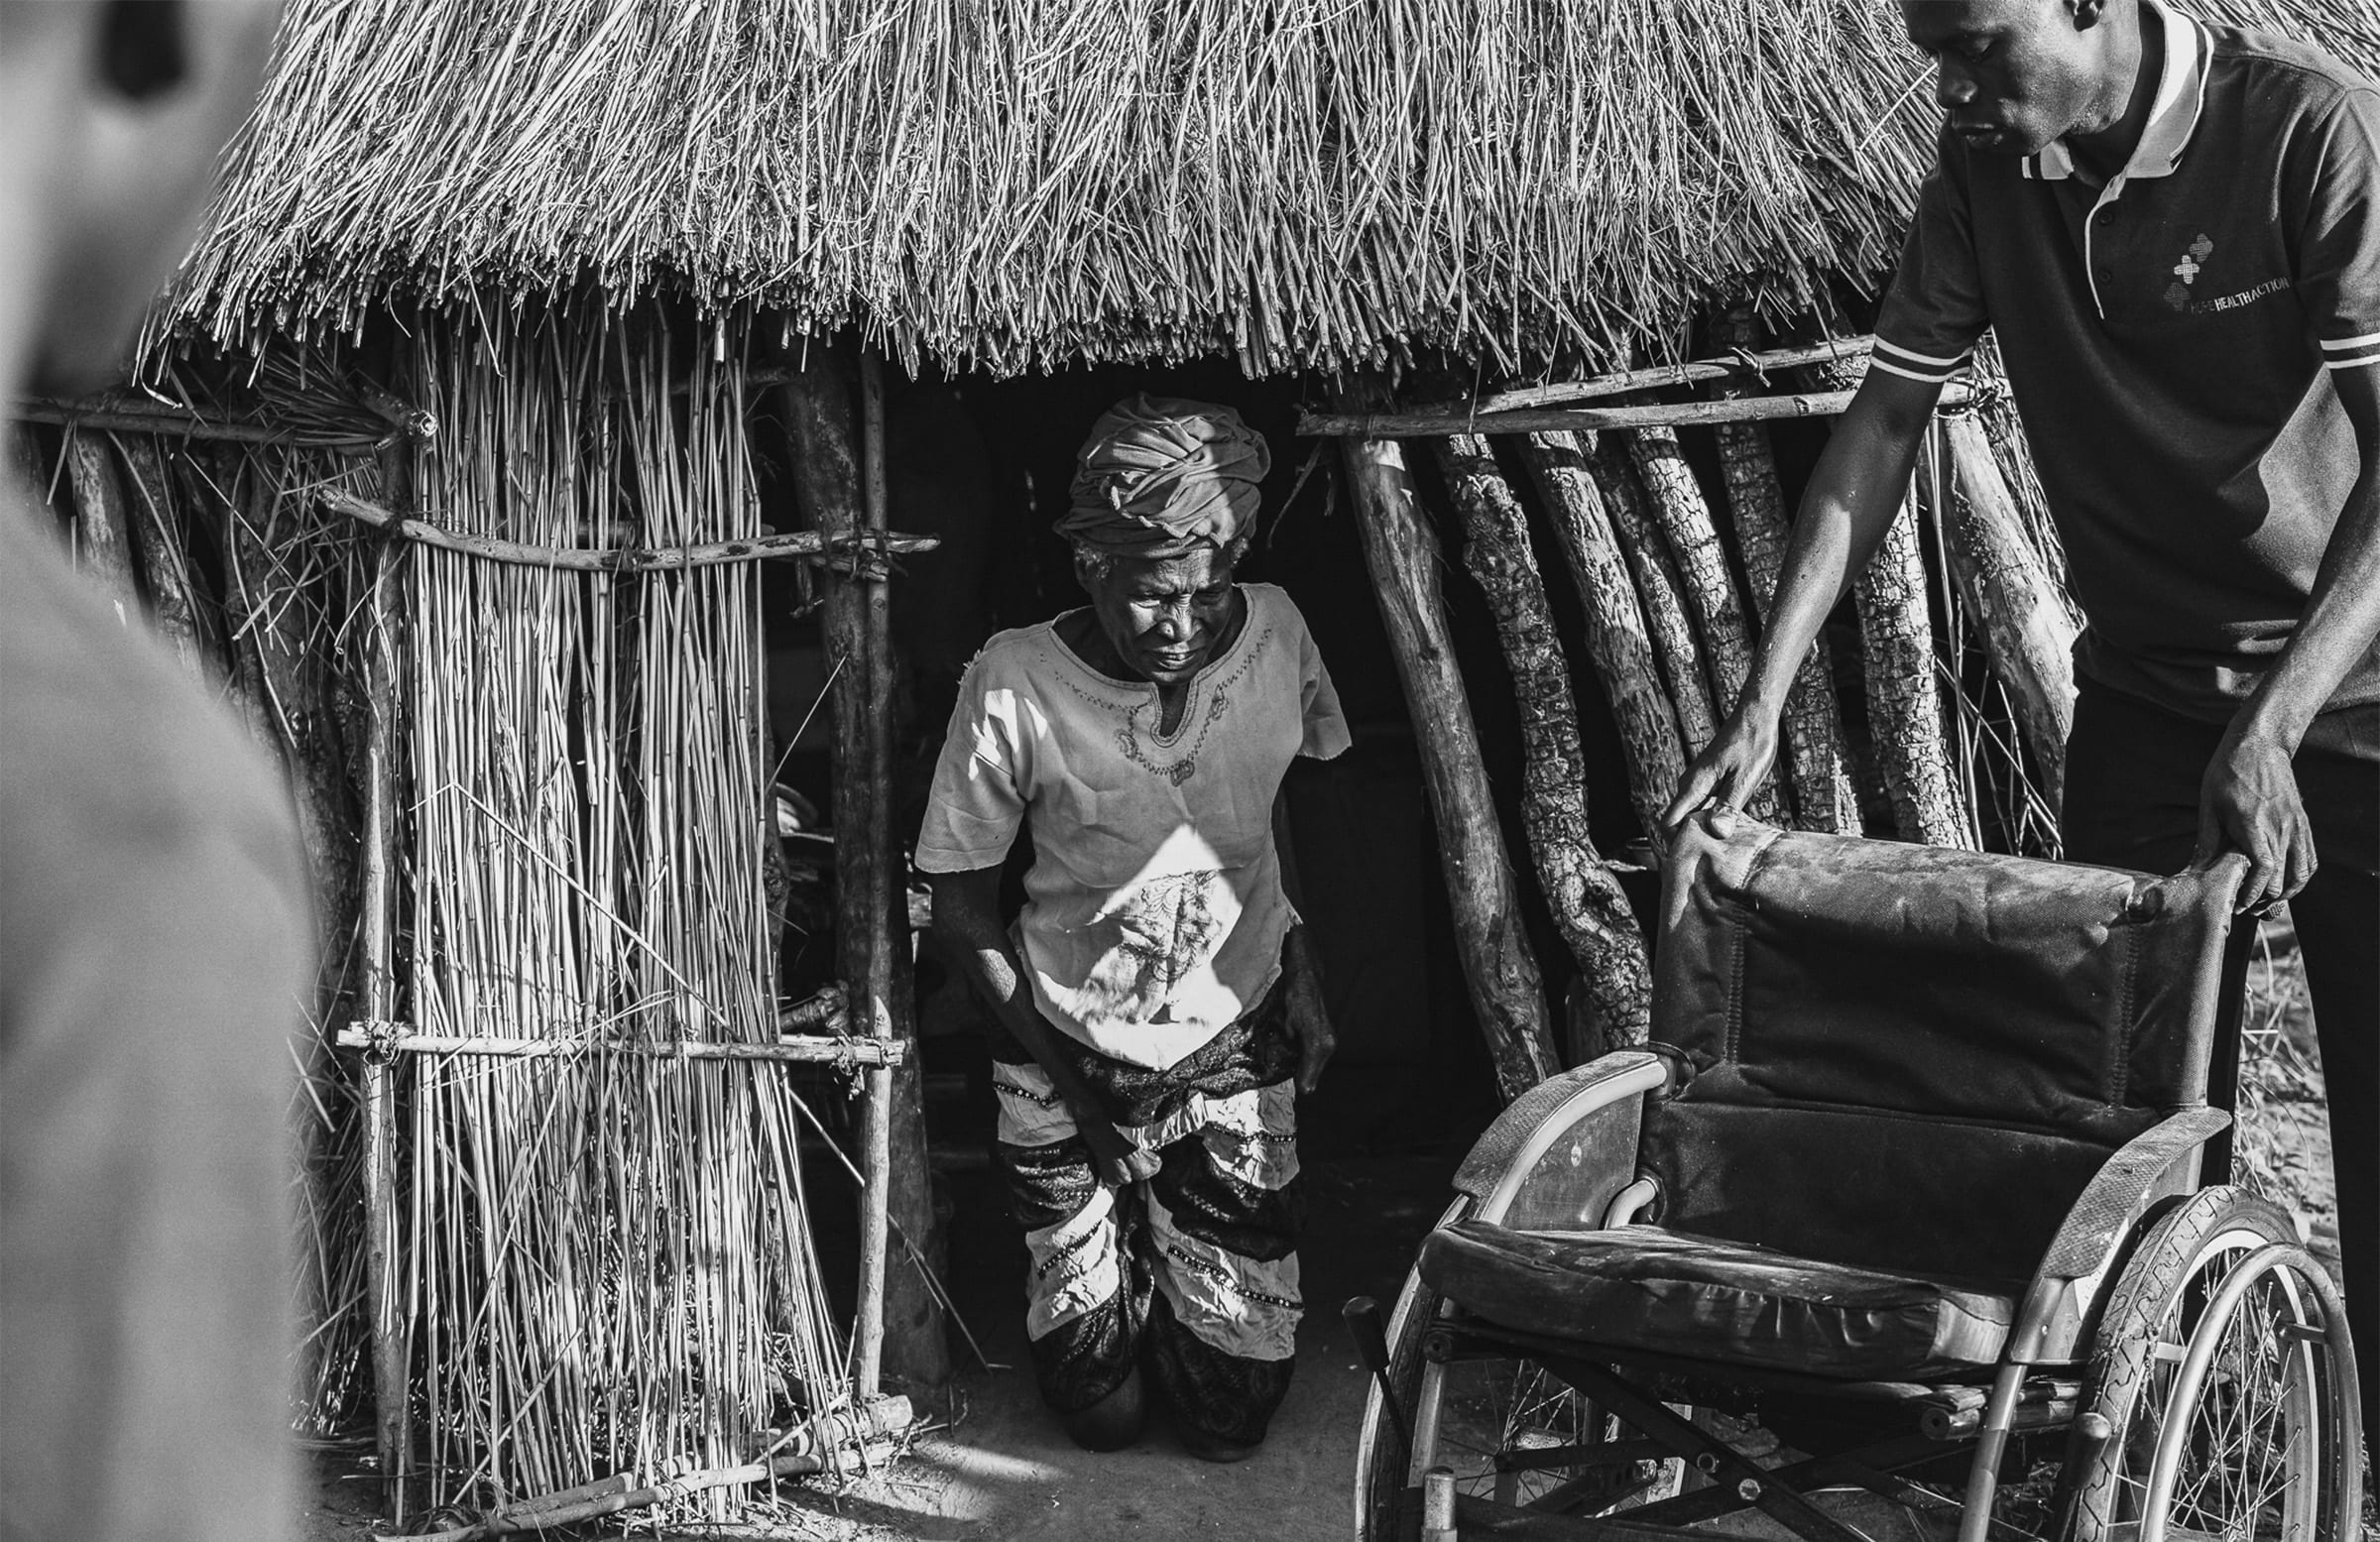 an elderly woman comes out of a hut on her knees towards a wheelchair